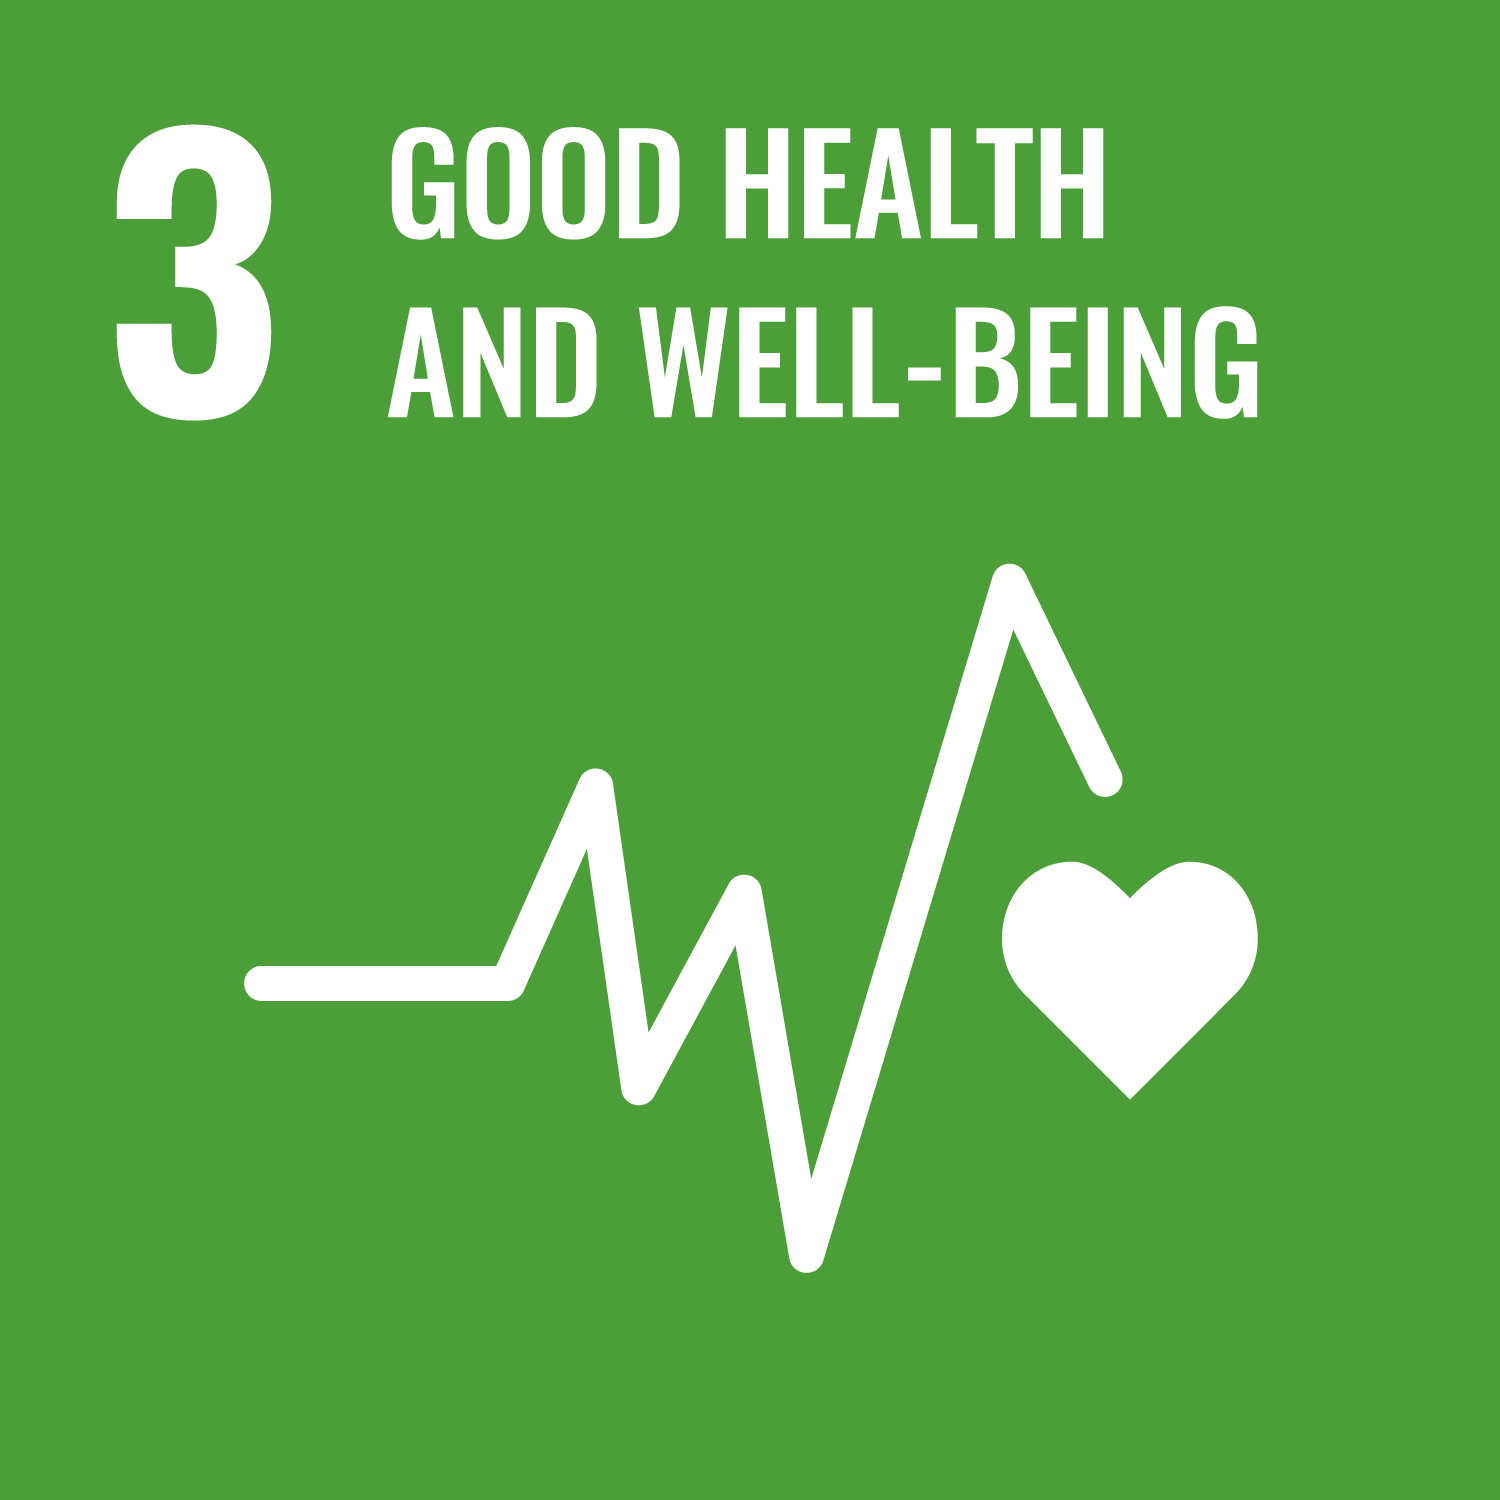 3. Good health and well-being Without health, life is not life. We believe wellness is a fundamental human right. How we target this SDG? Our homes have an HVAC system installed that can filter the air from outside going indoors. Our homeowners will be safe even in extreme wildfire smoke. We build comfortable, smartly insulated homes, with toxin free materials to deliver cleaner indoor air and reduce respiratory illnesses of its occupants.